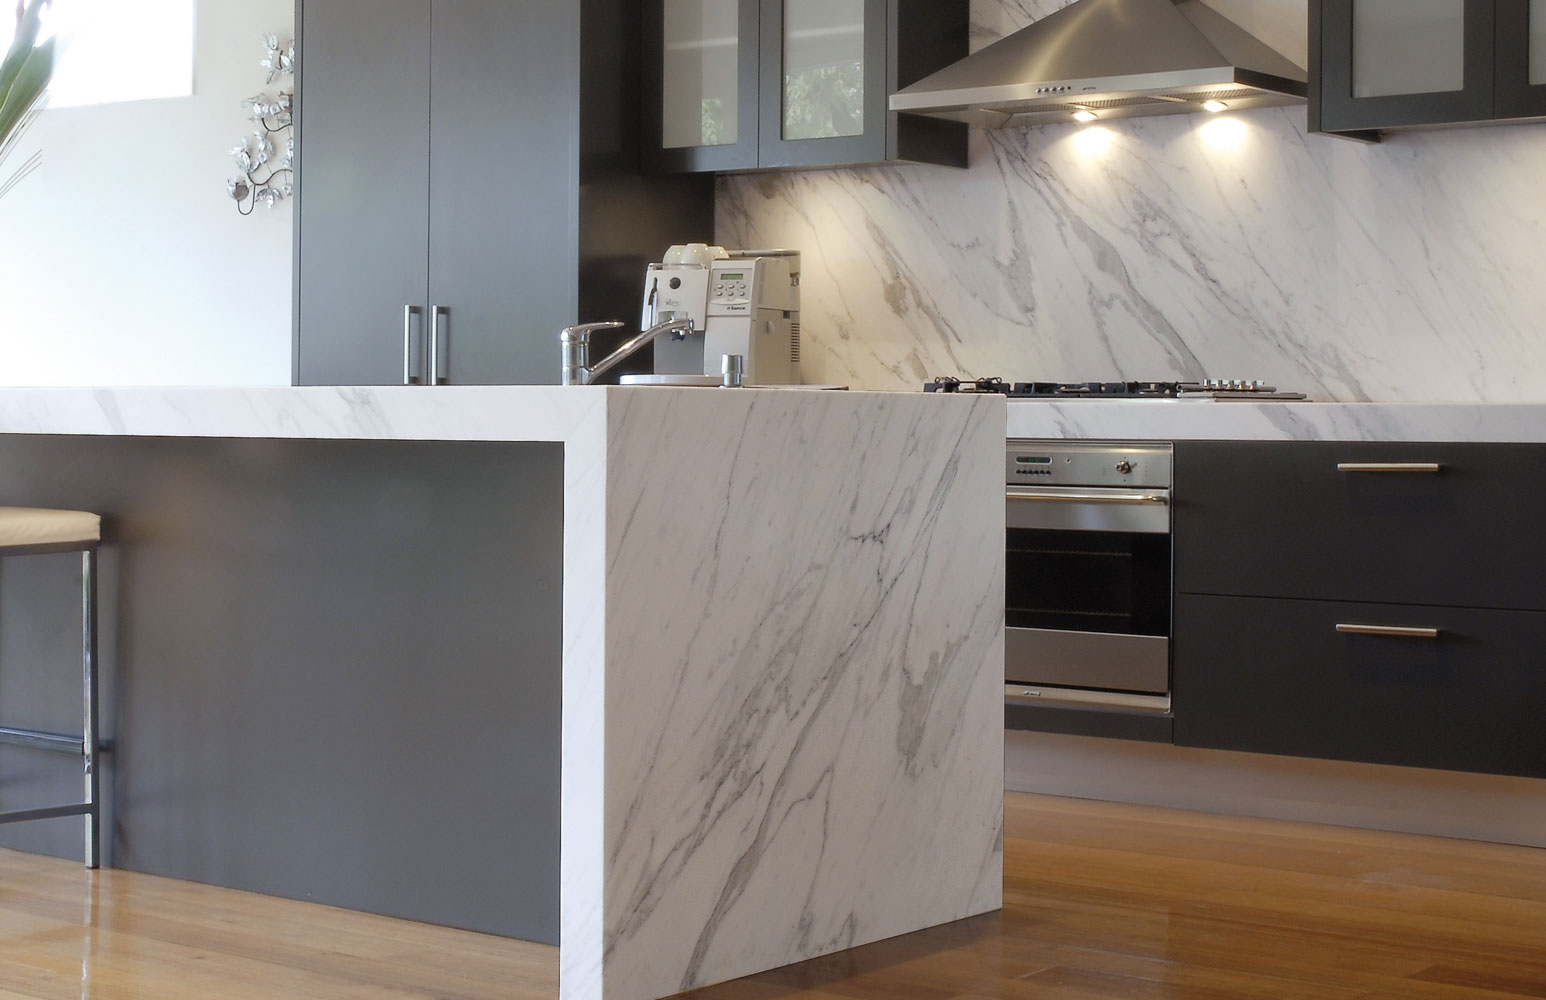 Top Countertops : ... Edge / The Bathroom Vanity, Shower Door, Granite Countertop / Blog